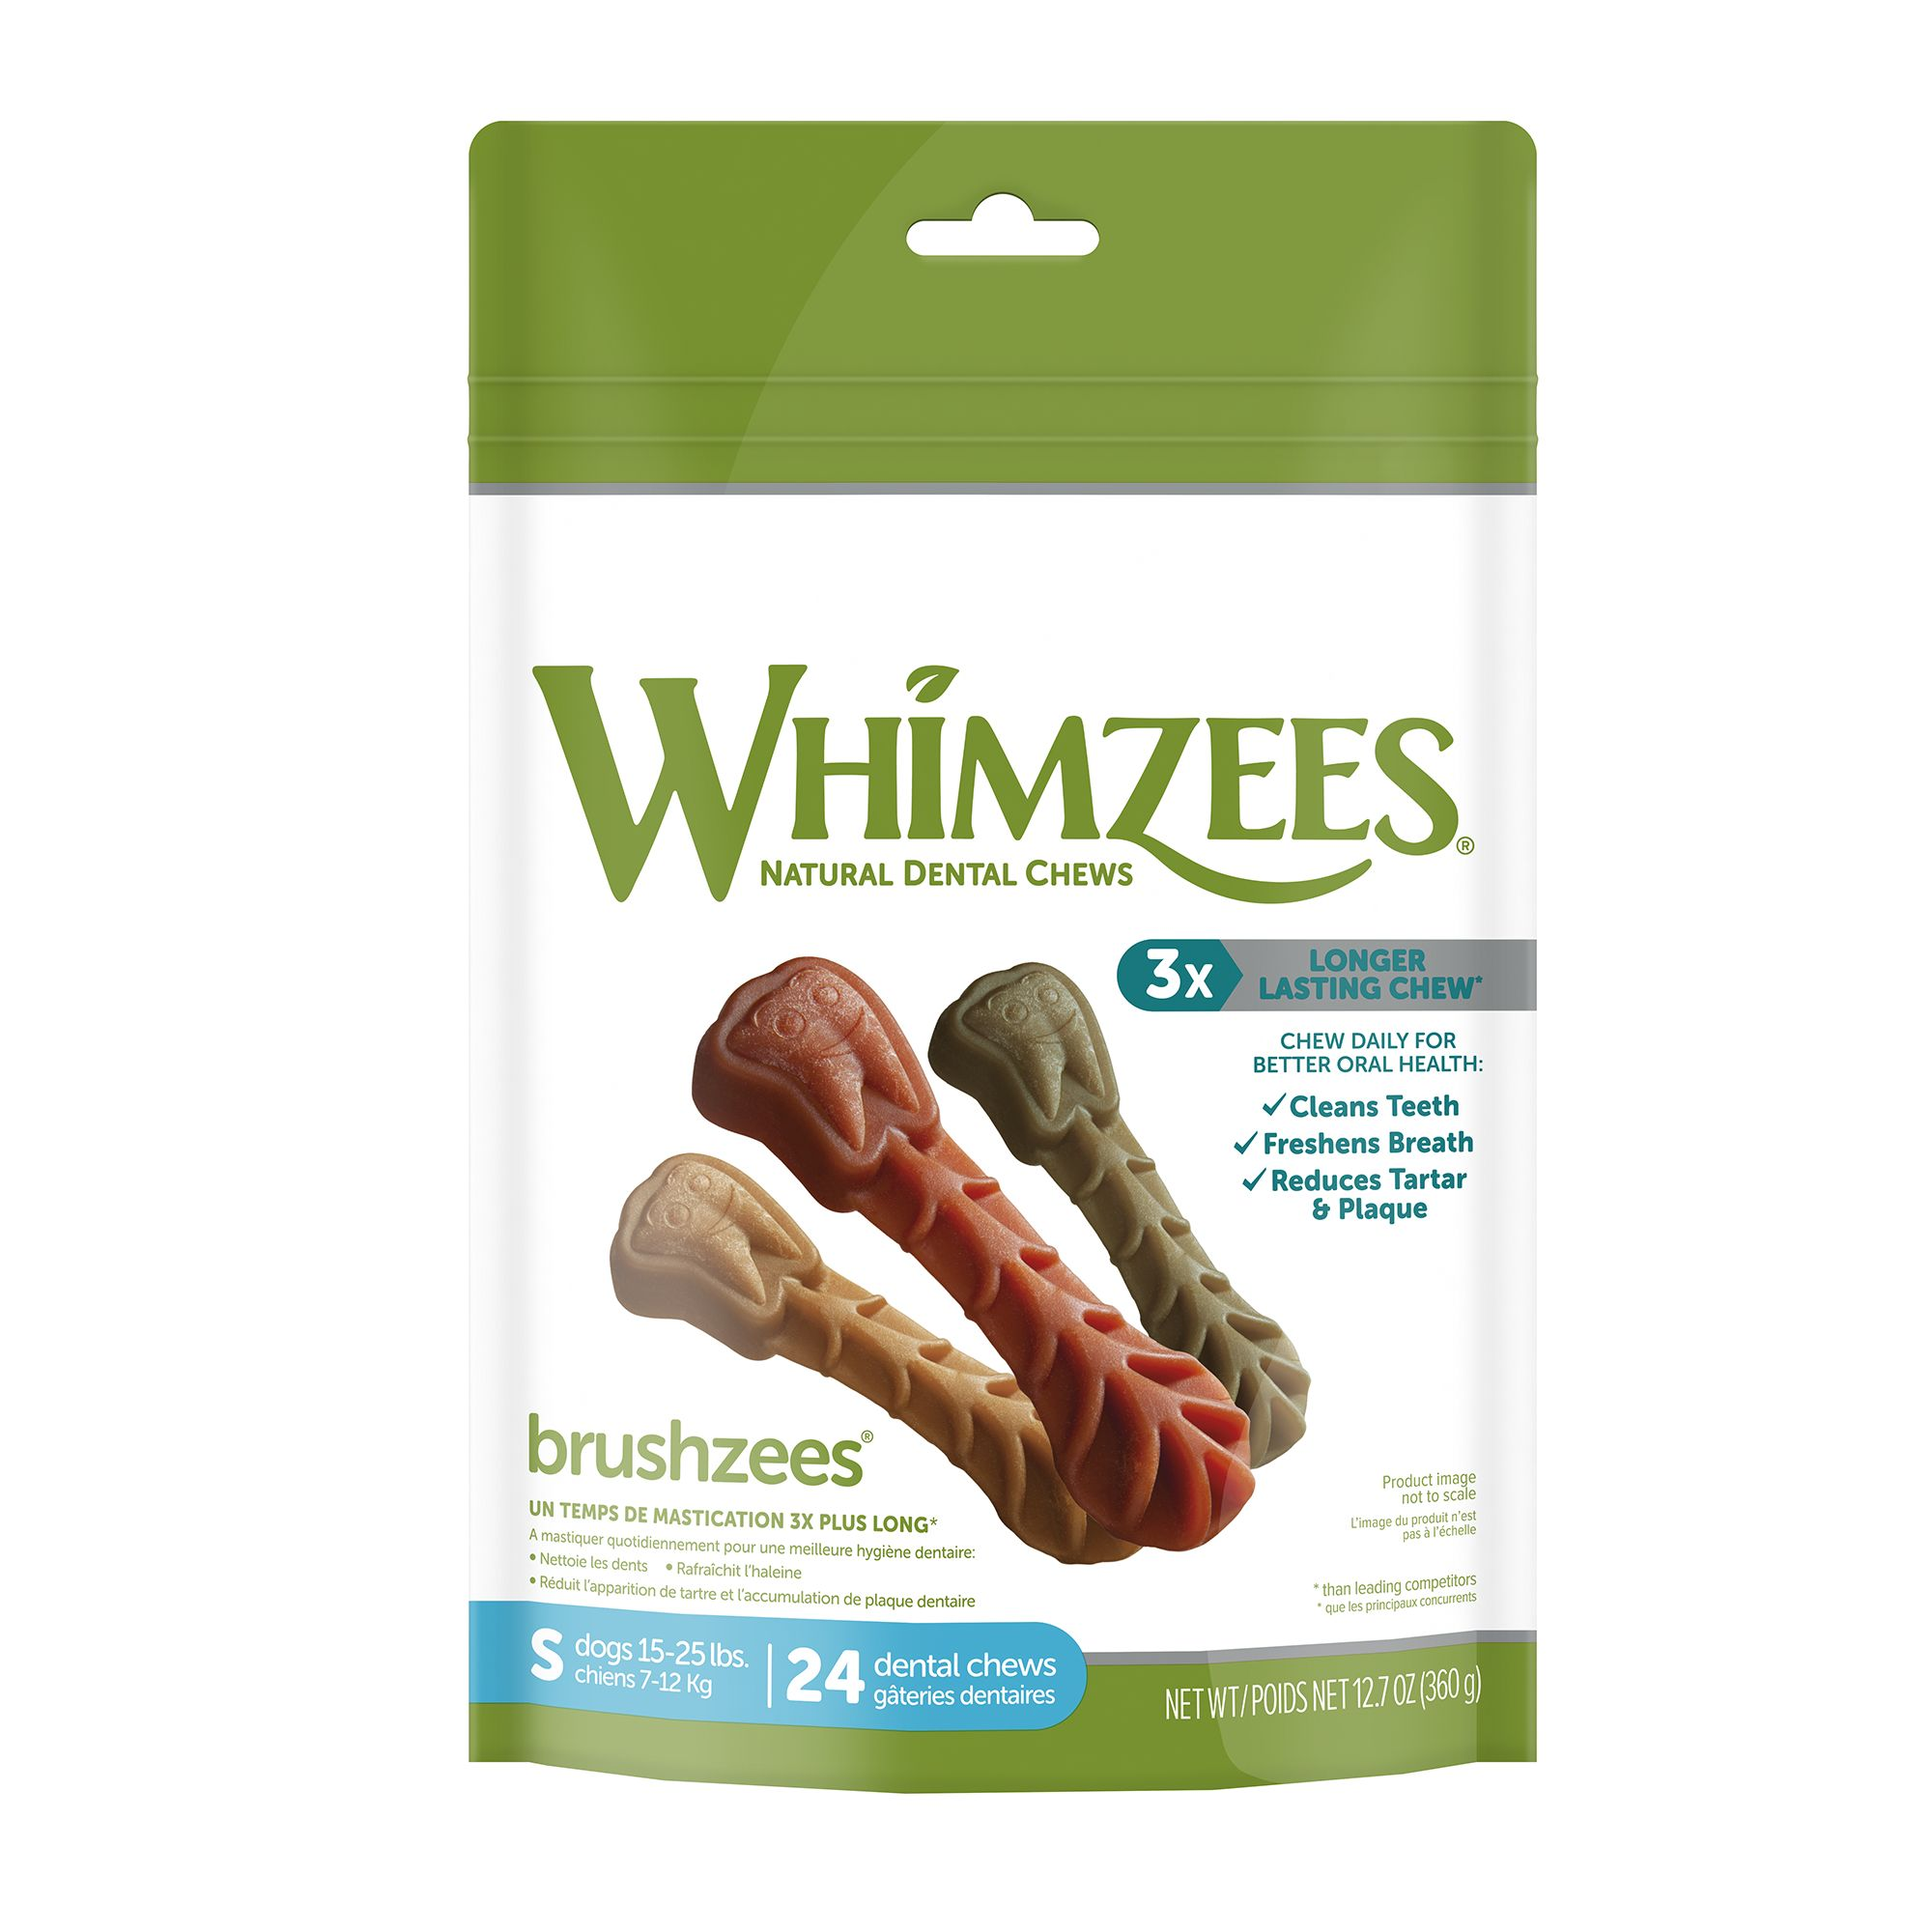 Whimzees Dental Care Toothbrush Small Dog Treat Natural Gluten Free Vegetarian Size 27 Count